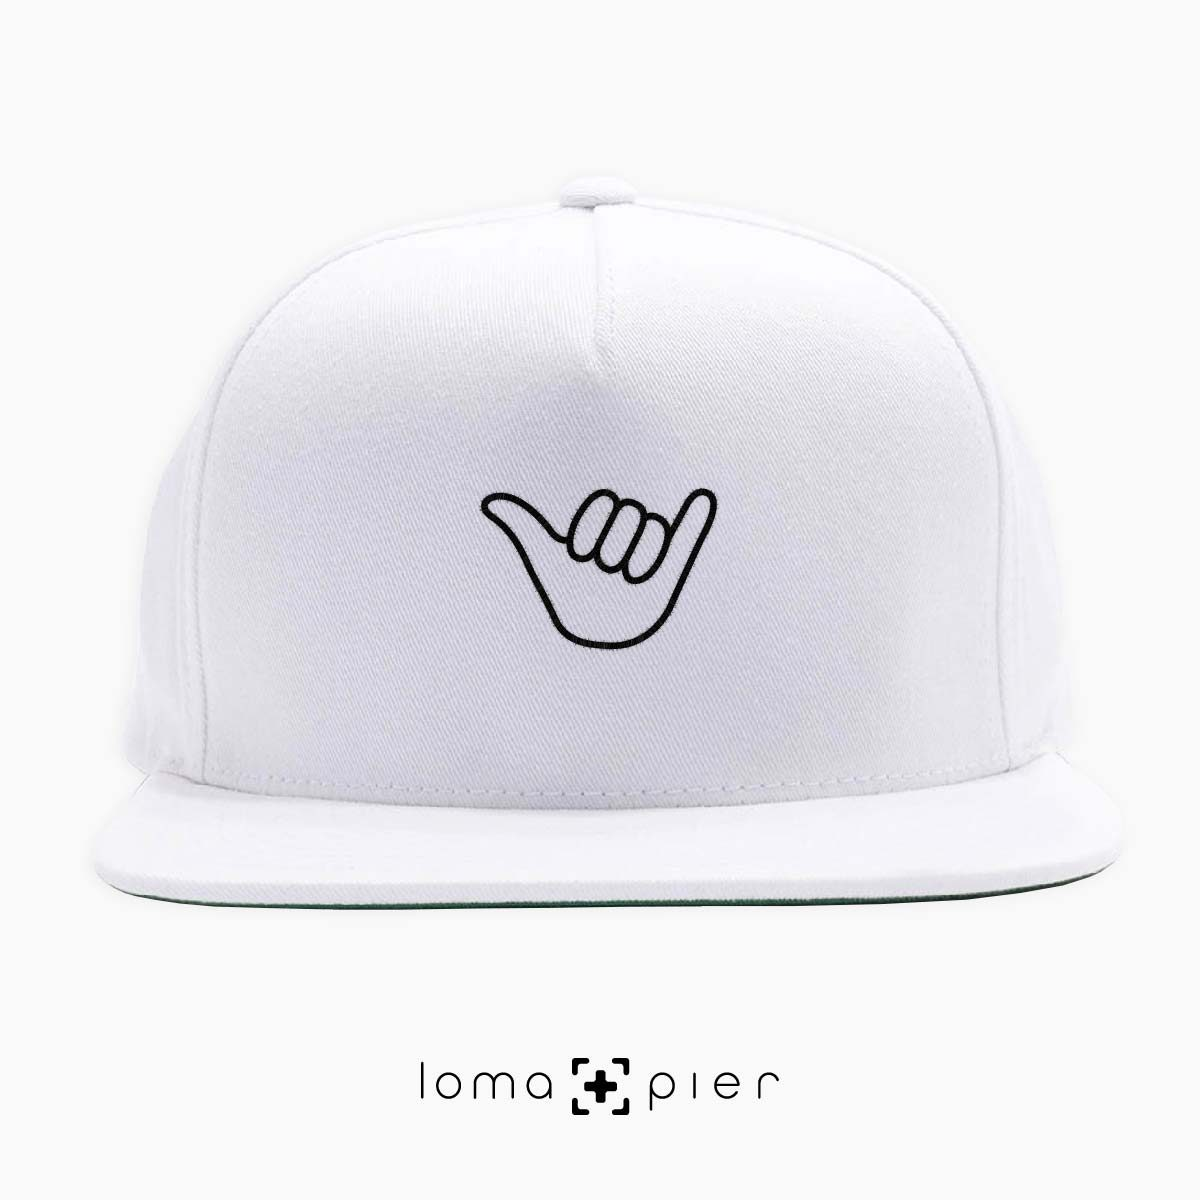 HANG LOOSE icon embroidered on a white classic snapback hat by loma+pier hat store